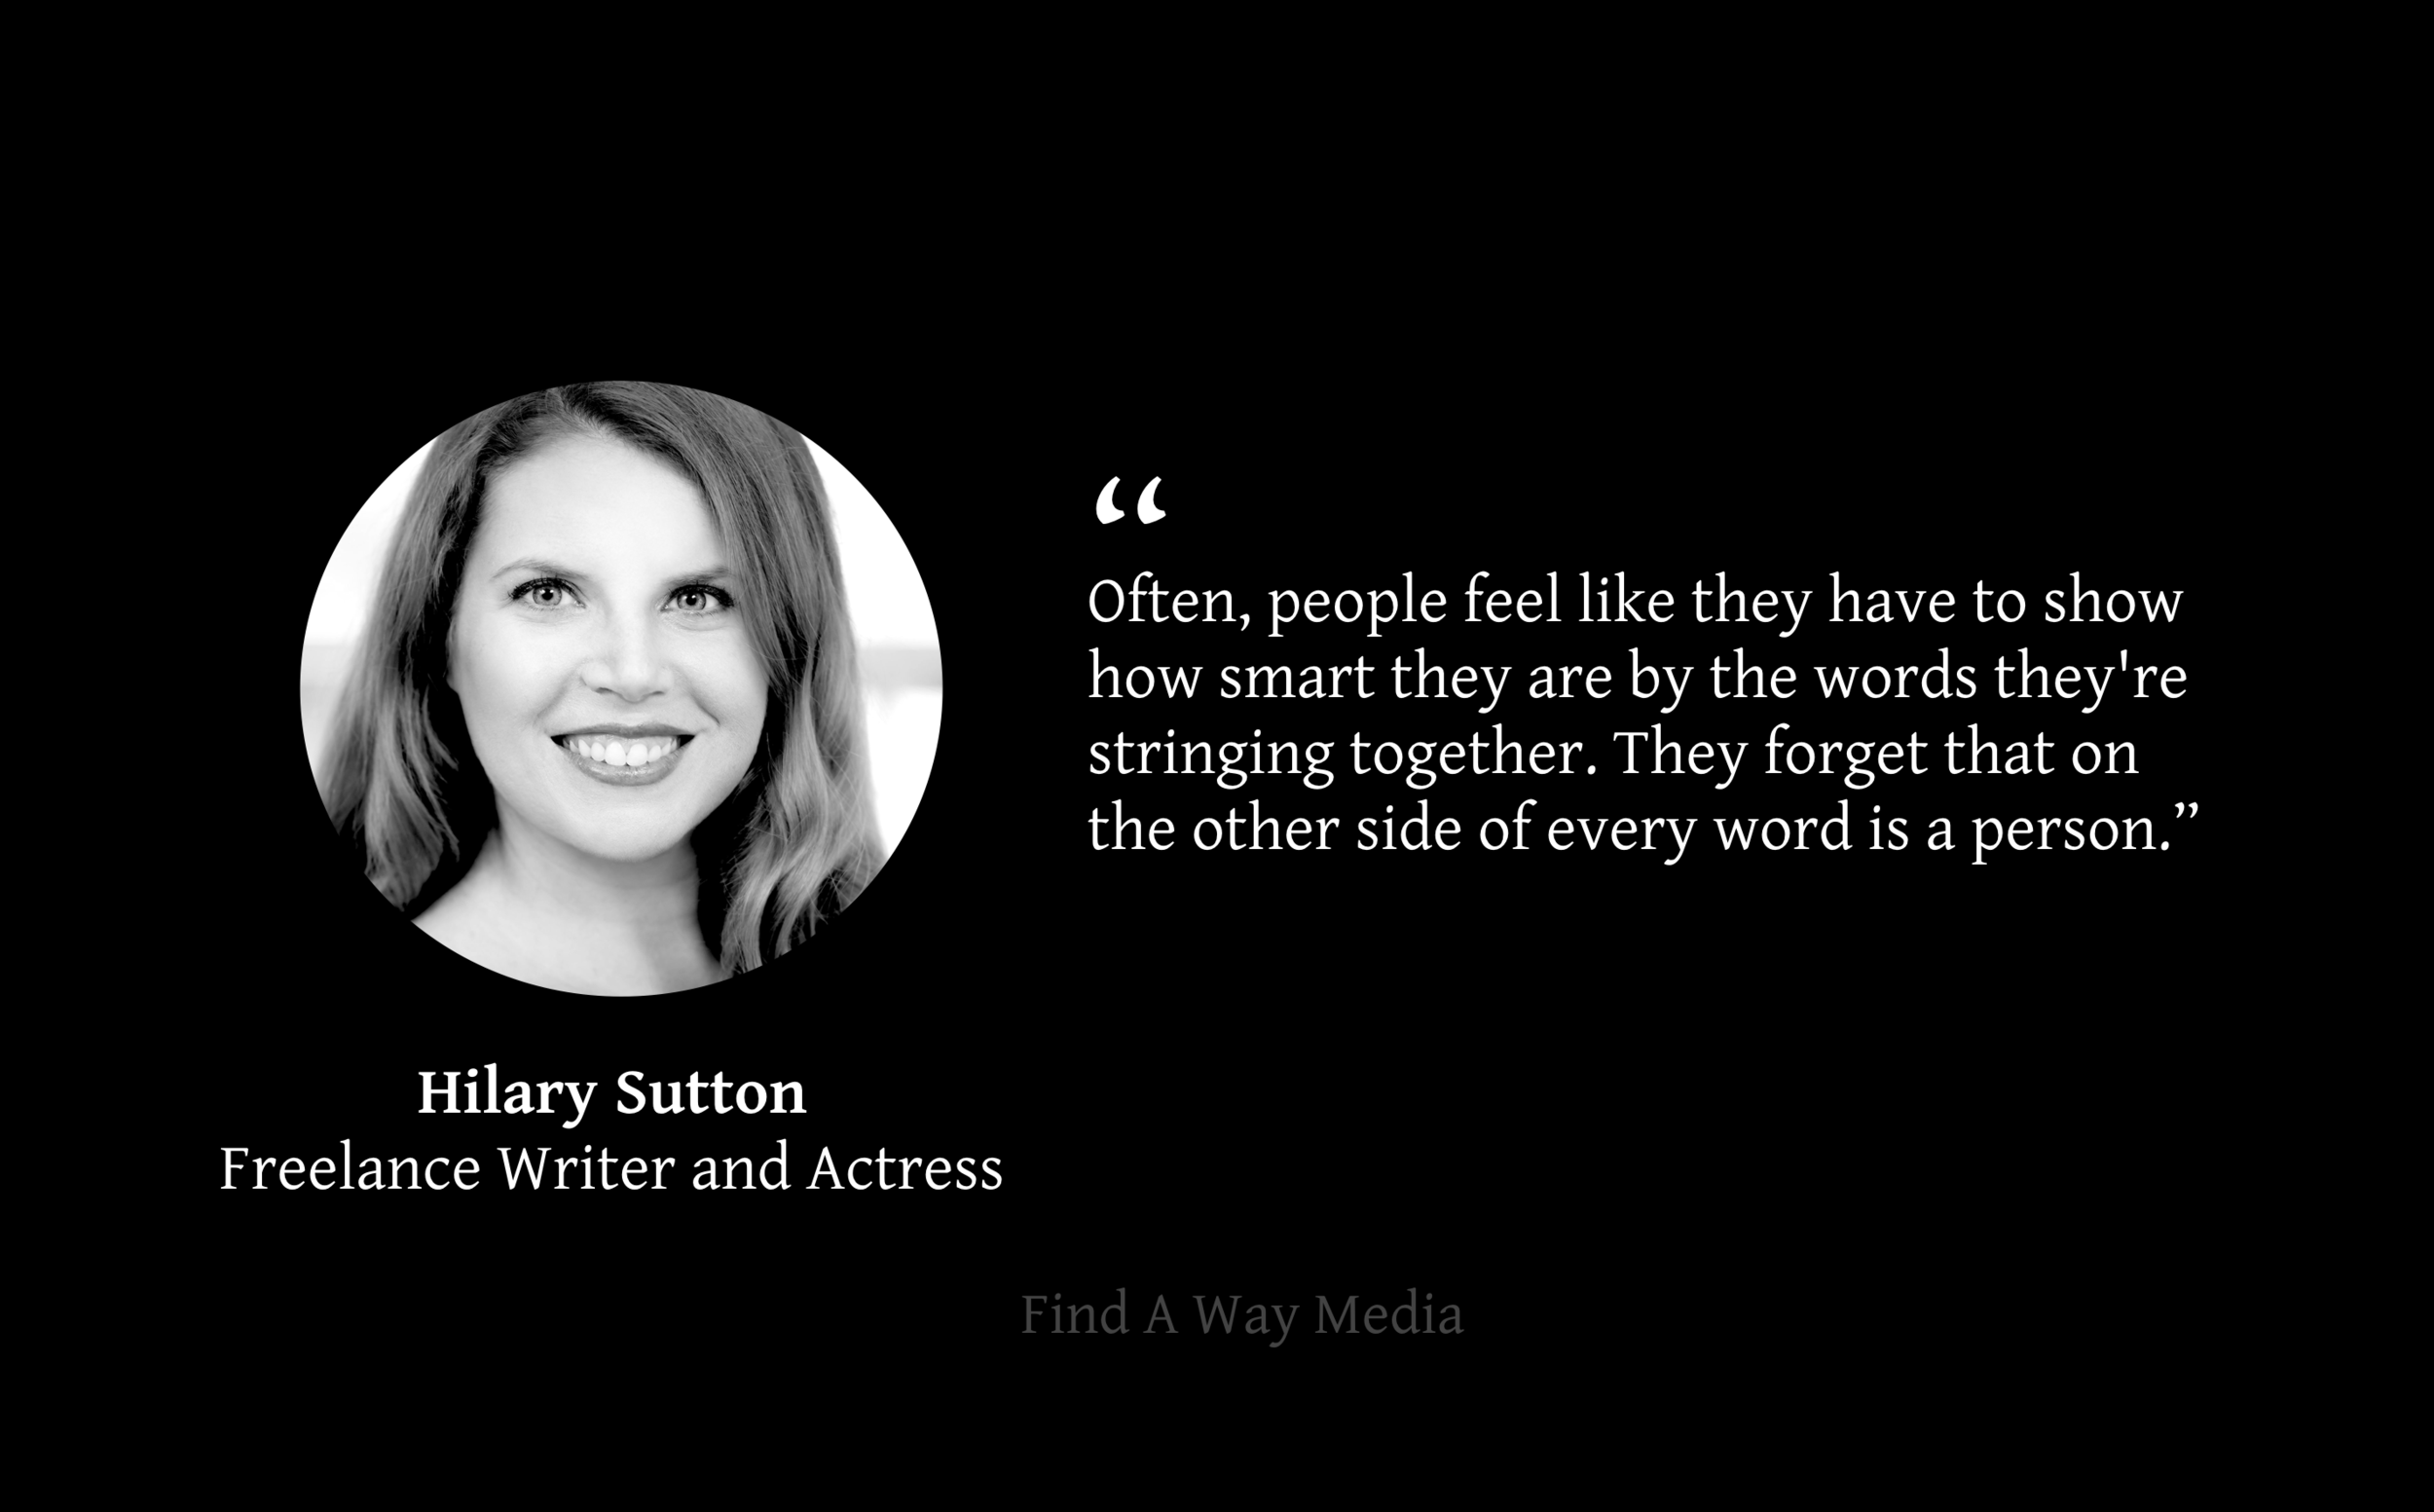 hilary sutton freelance writer actress find a way media